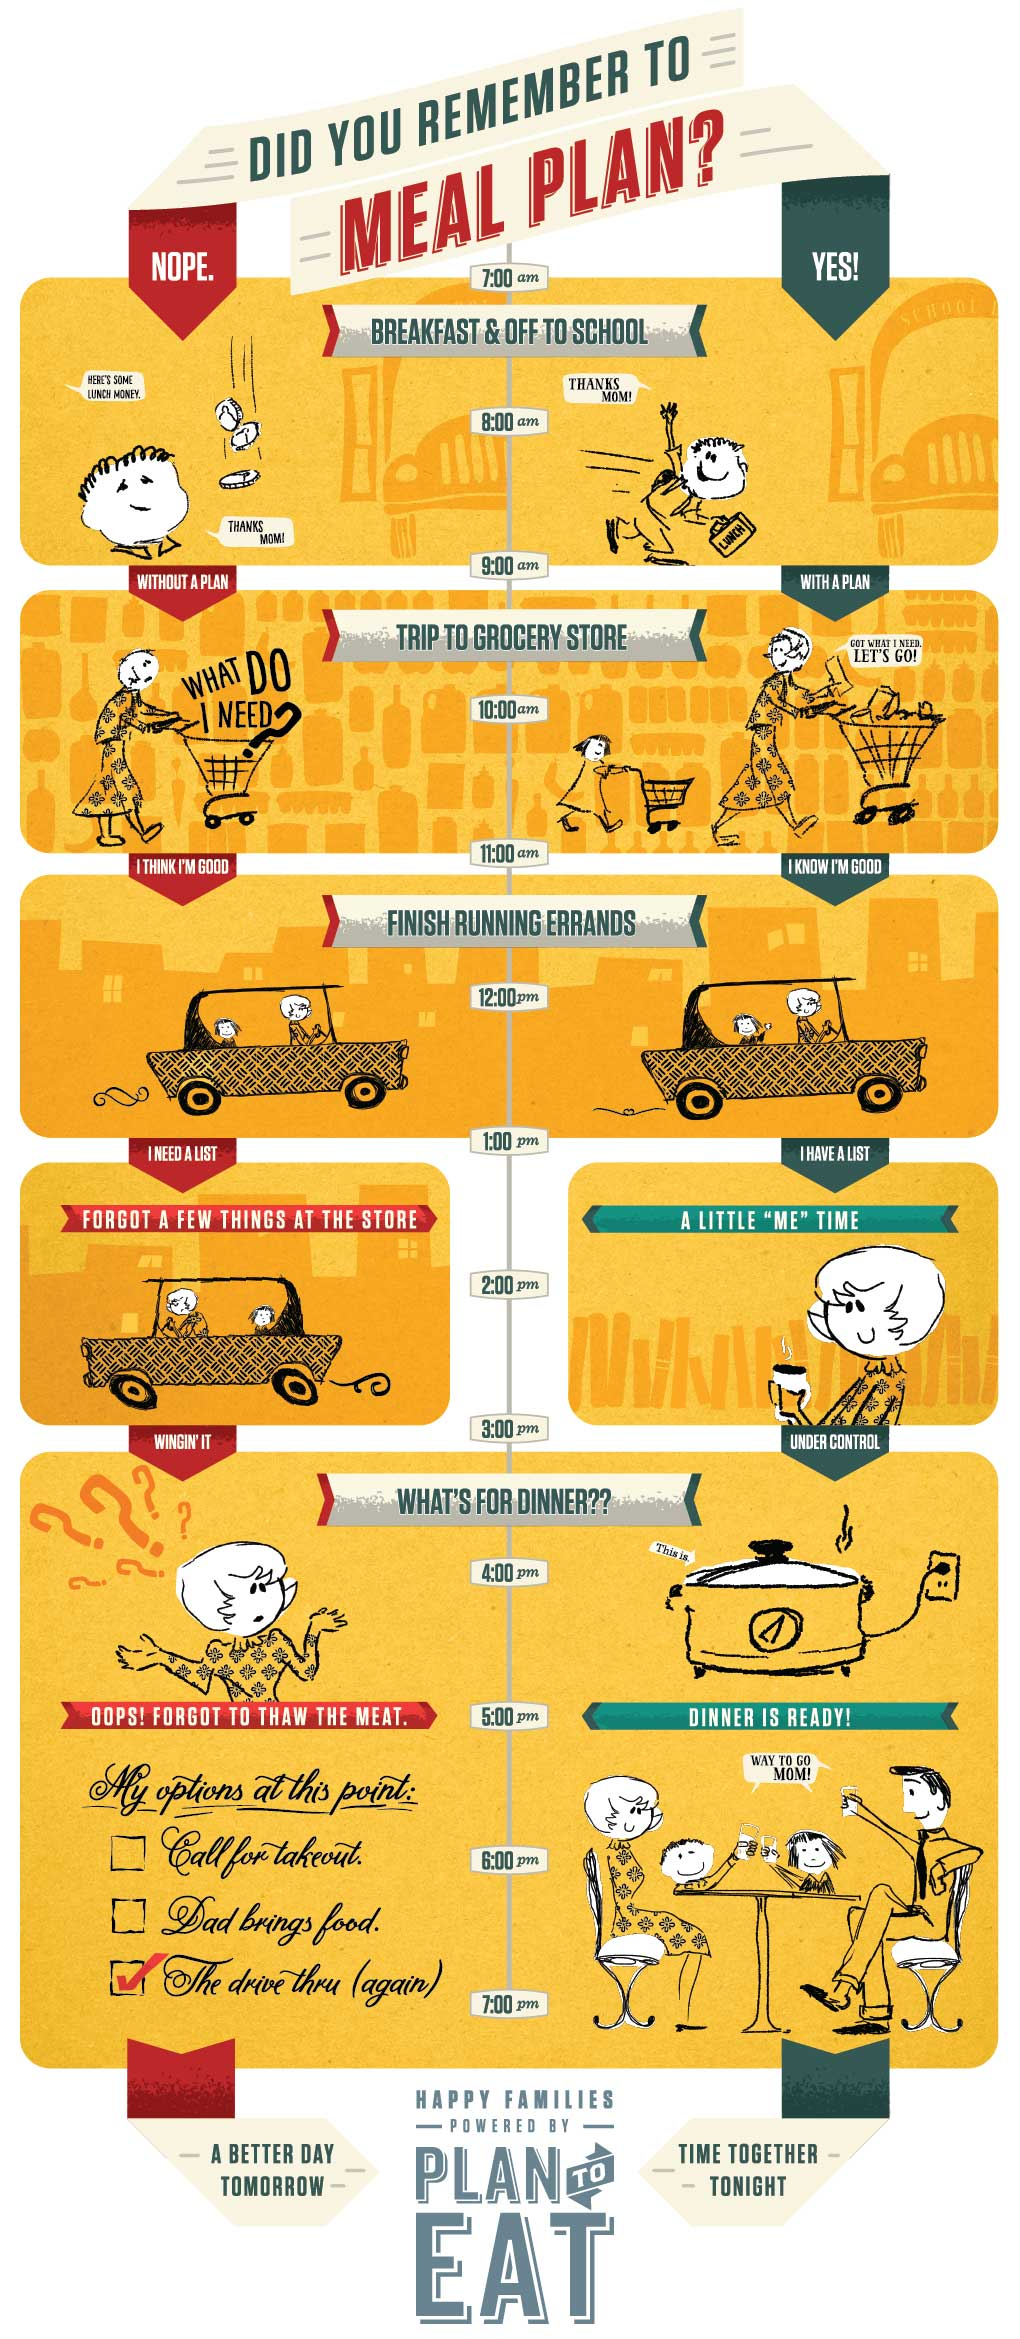 Did-you-remember-to-meal-plan-infographic